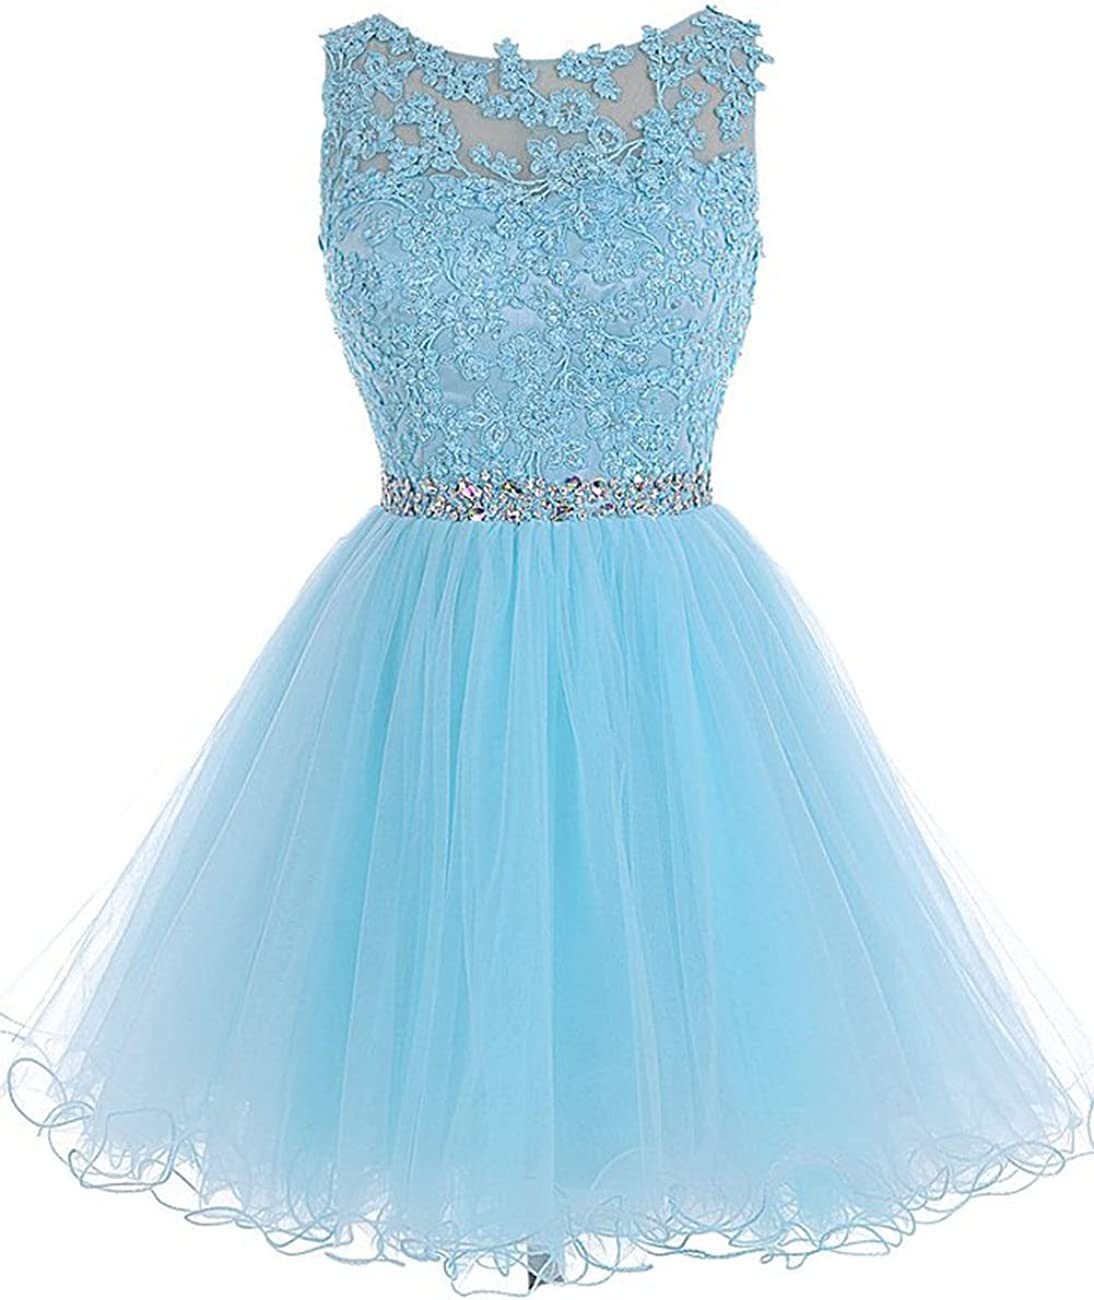 Short Homecoming Dresses Lace Open Back Cocktail Evening Party Dresses Tulle Prom Dress Appliques